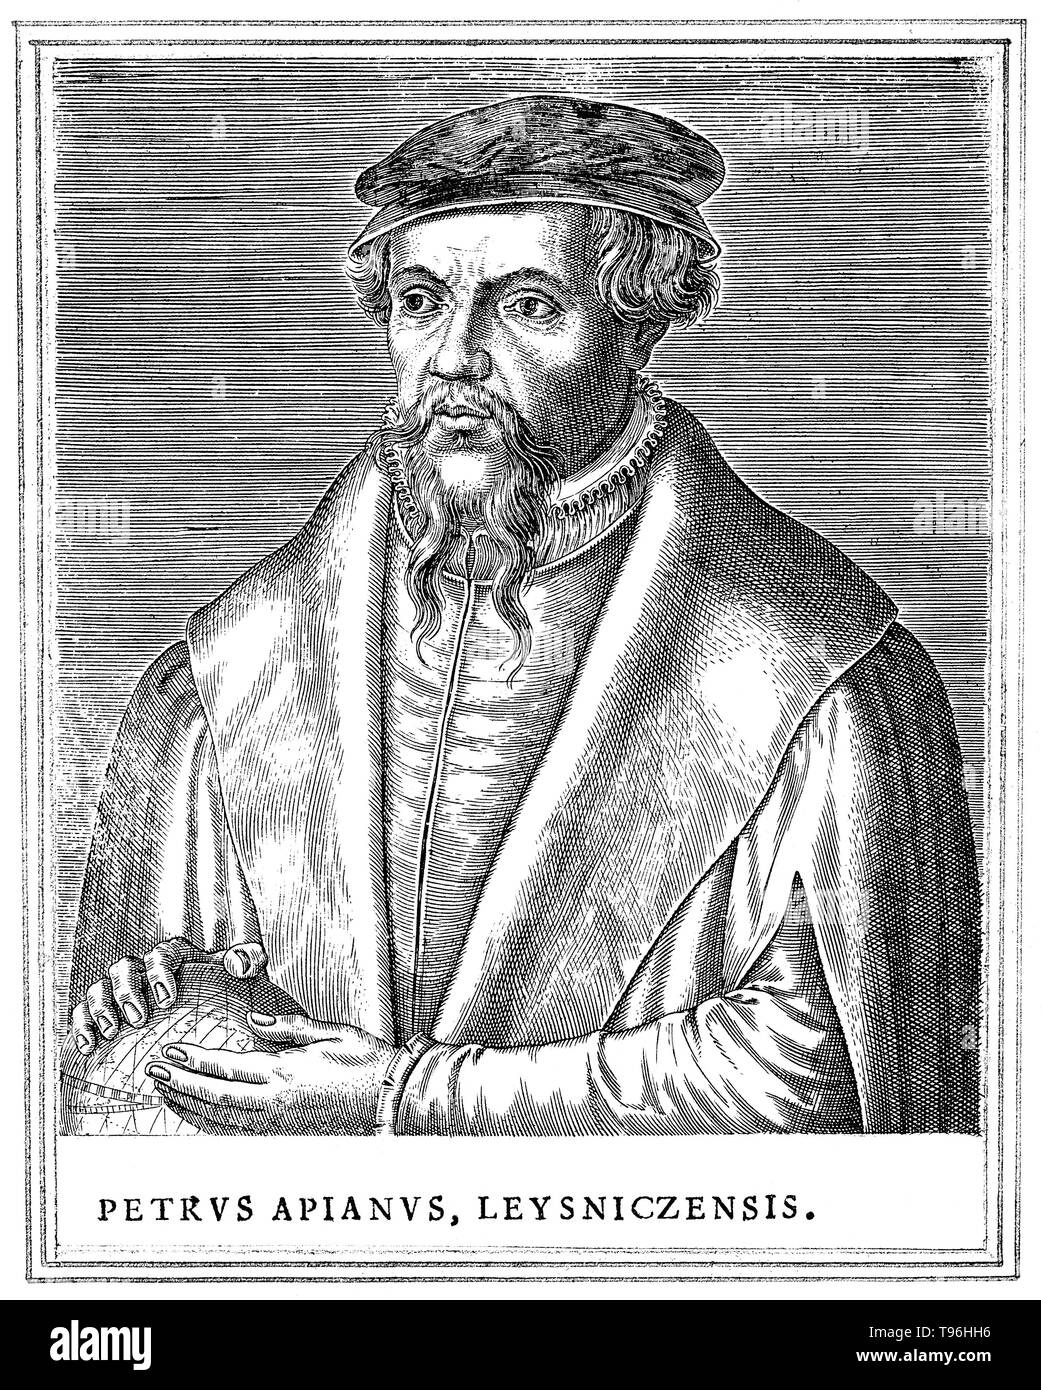 Petrus Apianus (April 16, 1495 - April 21, 1552) was a German humanist, known for his works in mathematics, astronomy and cartography. In 1524 he produced his Cosmographicus liber, a respected work on astronomy and navigation that was to see at least 30 reprints in 14 languages. In 1527 he published a variation of Pascal's triangle, and in 1534 a table of sines. In 1531, he observed a comet and discovered that a comet's tail always point away from the sun. In 1540, he printed the Astronomicum Caesareum, dedicated to Charles V who appointed him his court mathematician. He designed sundials, pub - Stock Image